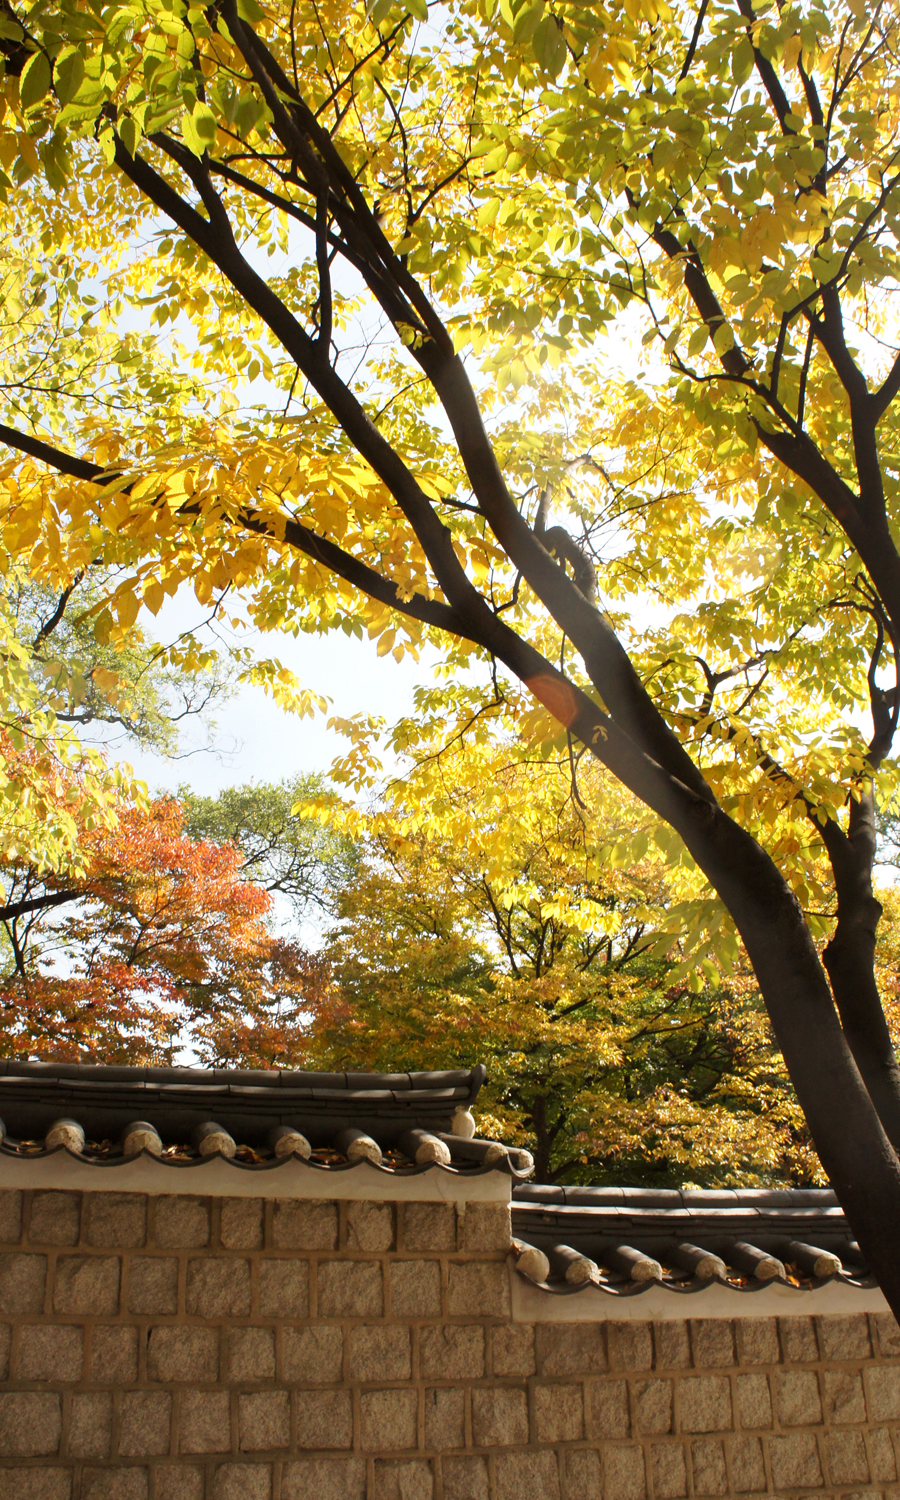 2014-seoul-korea-changdeokgung-palace-secret-garden-biwon-01